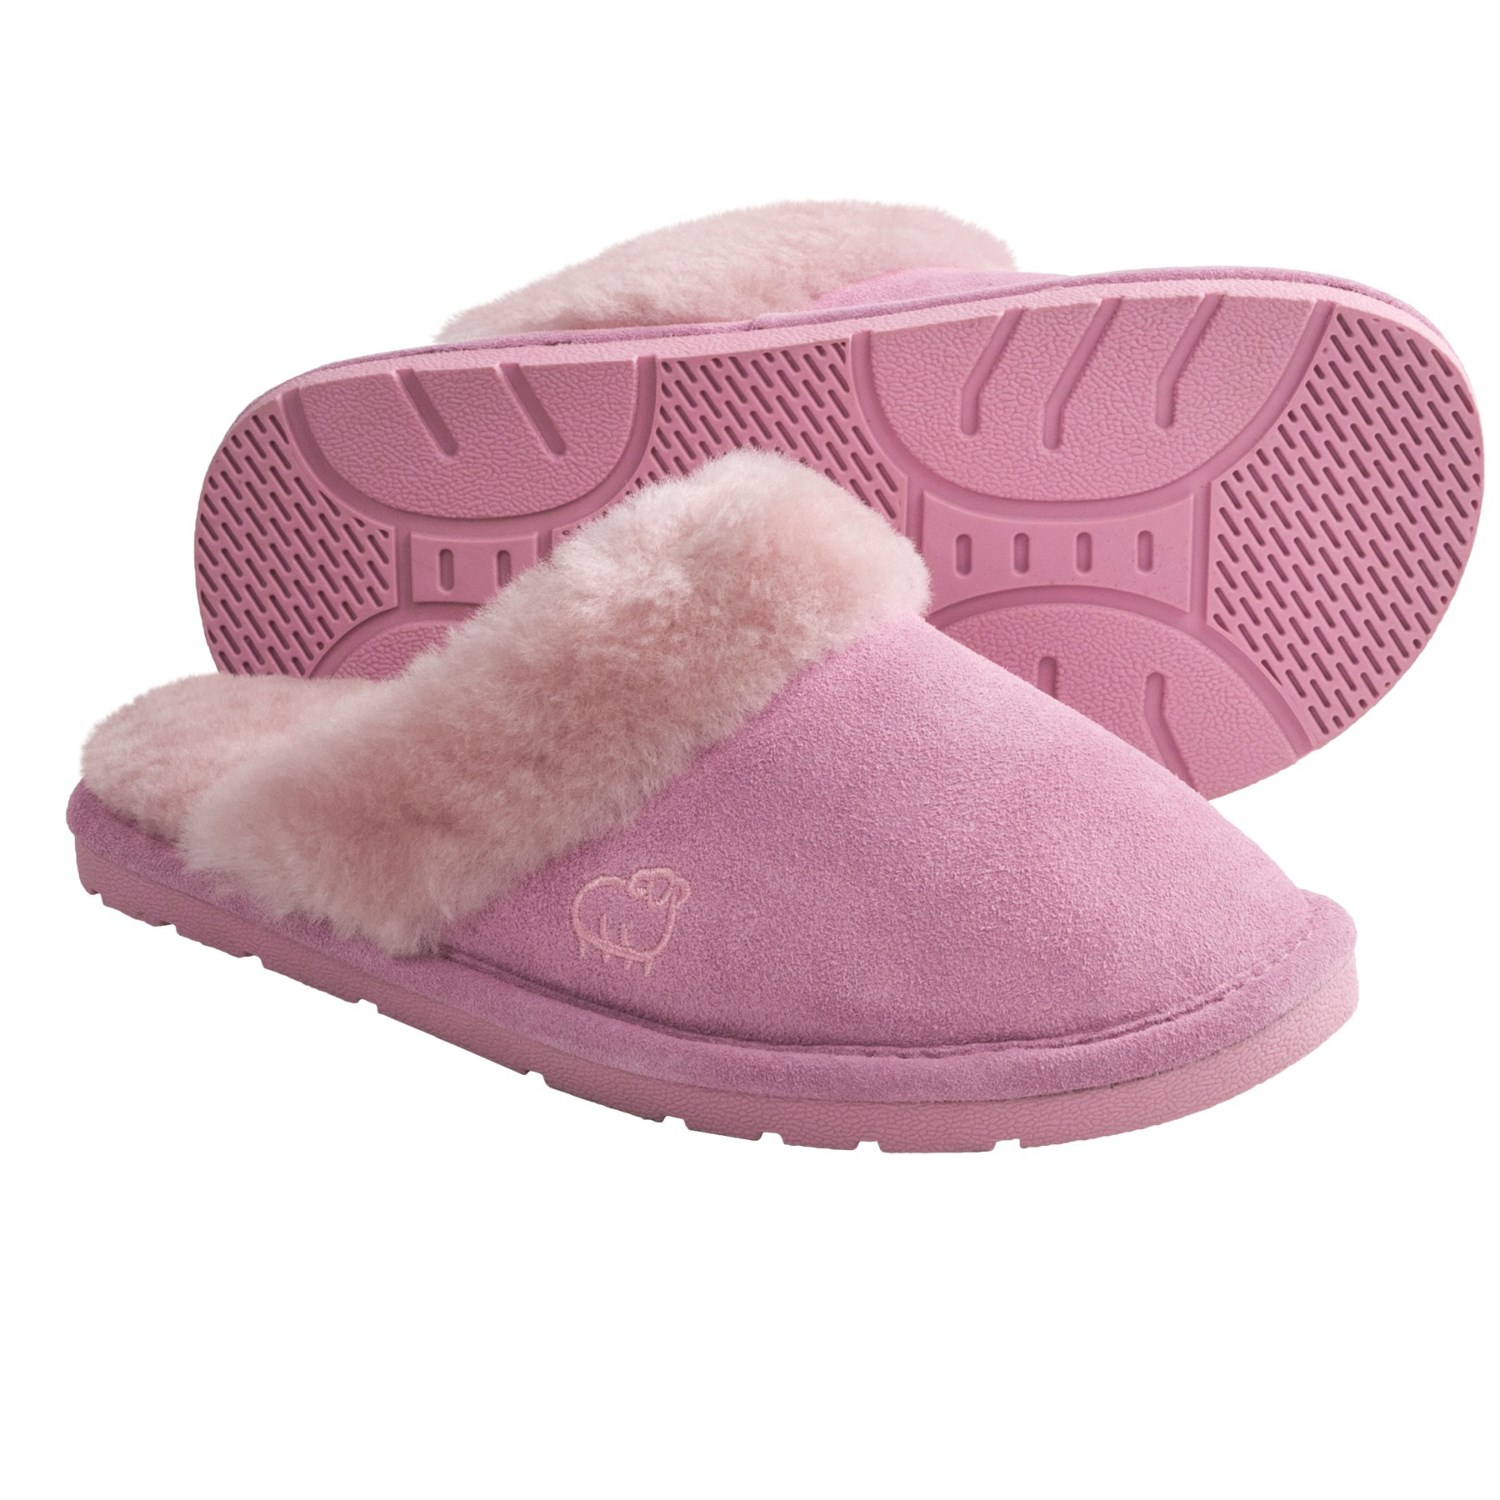 Free shipping BOTH ways on Slippers, Pink, Women, from our vast selection of styles. Fast delivery, and 24/7/ real-person service with a smile. Click or call